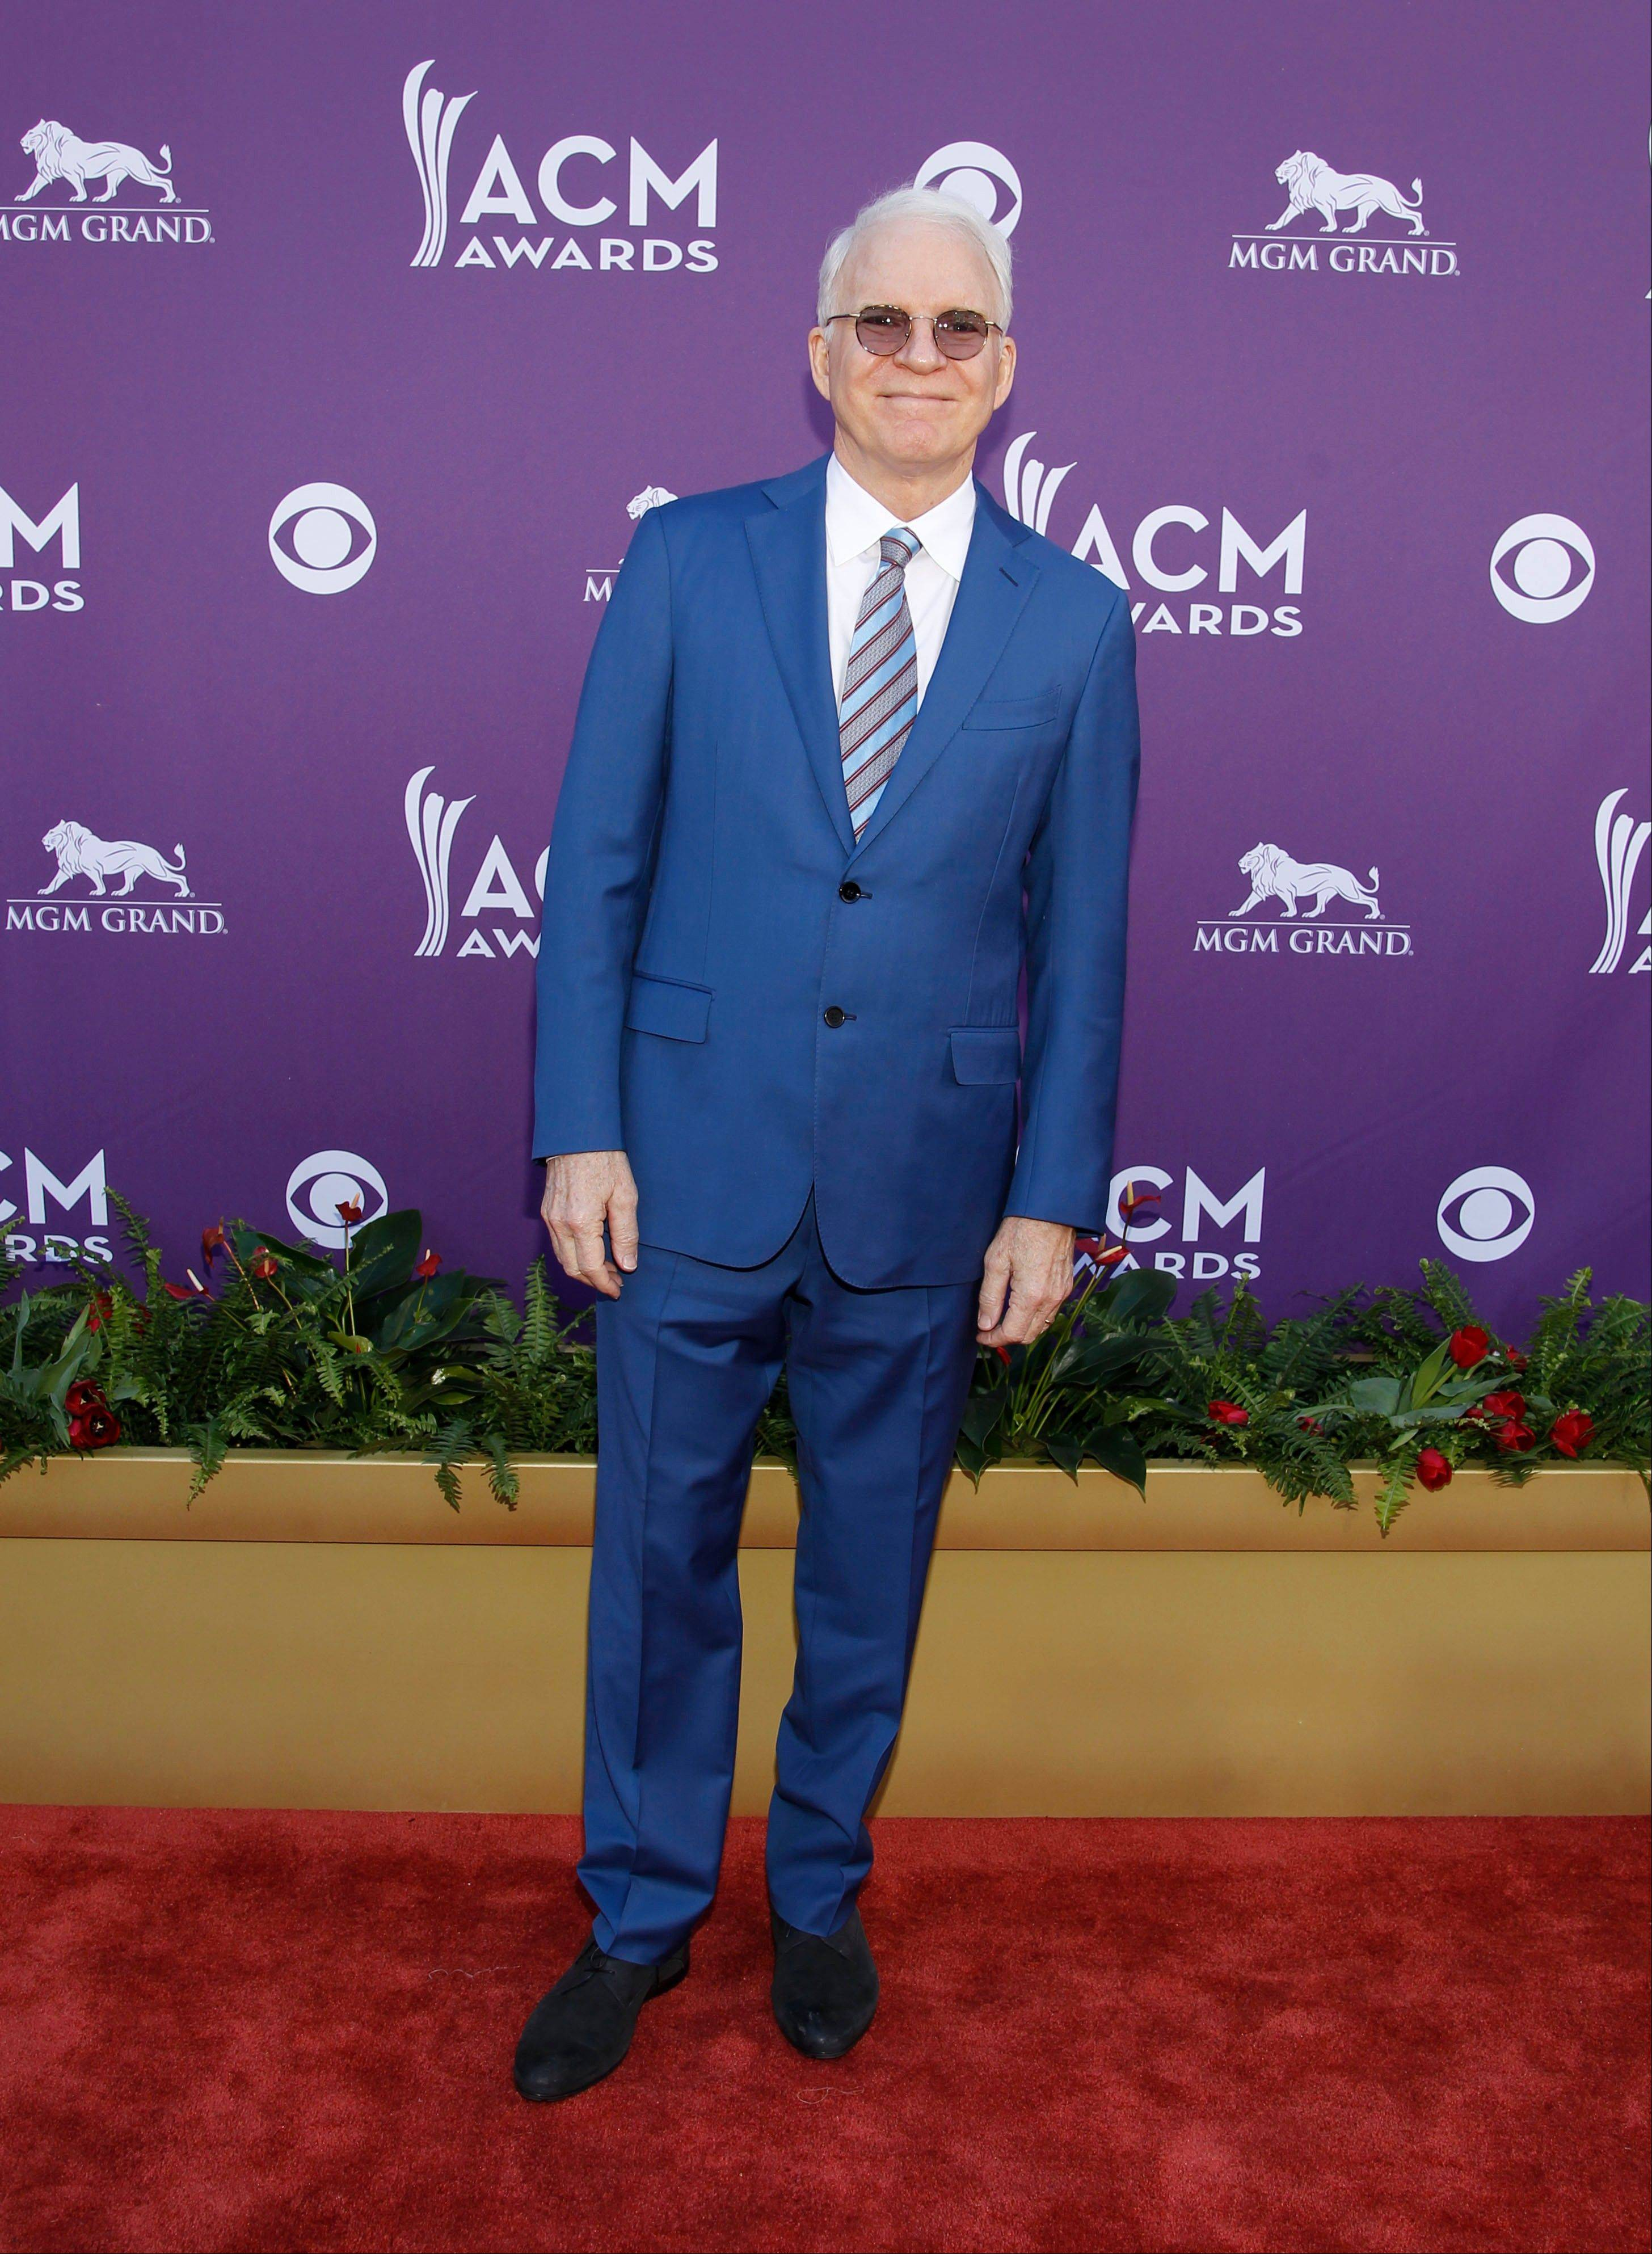 Actor, comedian and banjo player Steve Martin arrives at the 47th Annual Academy of Country Music Awards on Sunday in Las Vegas.